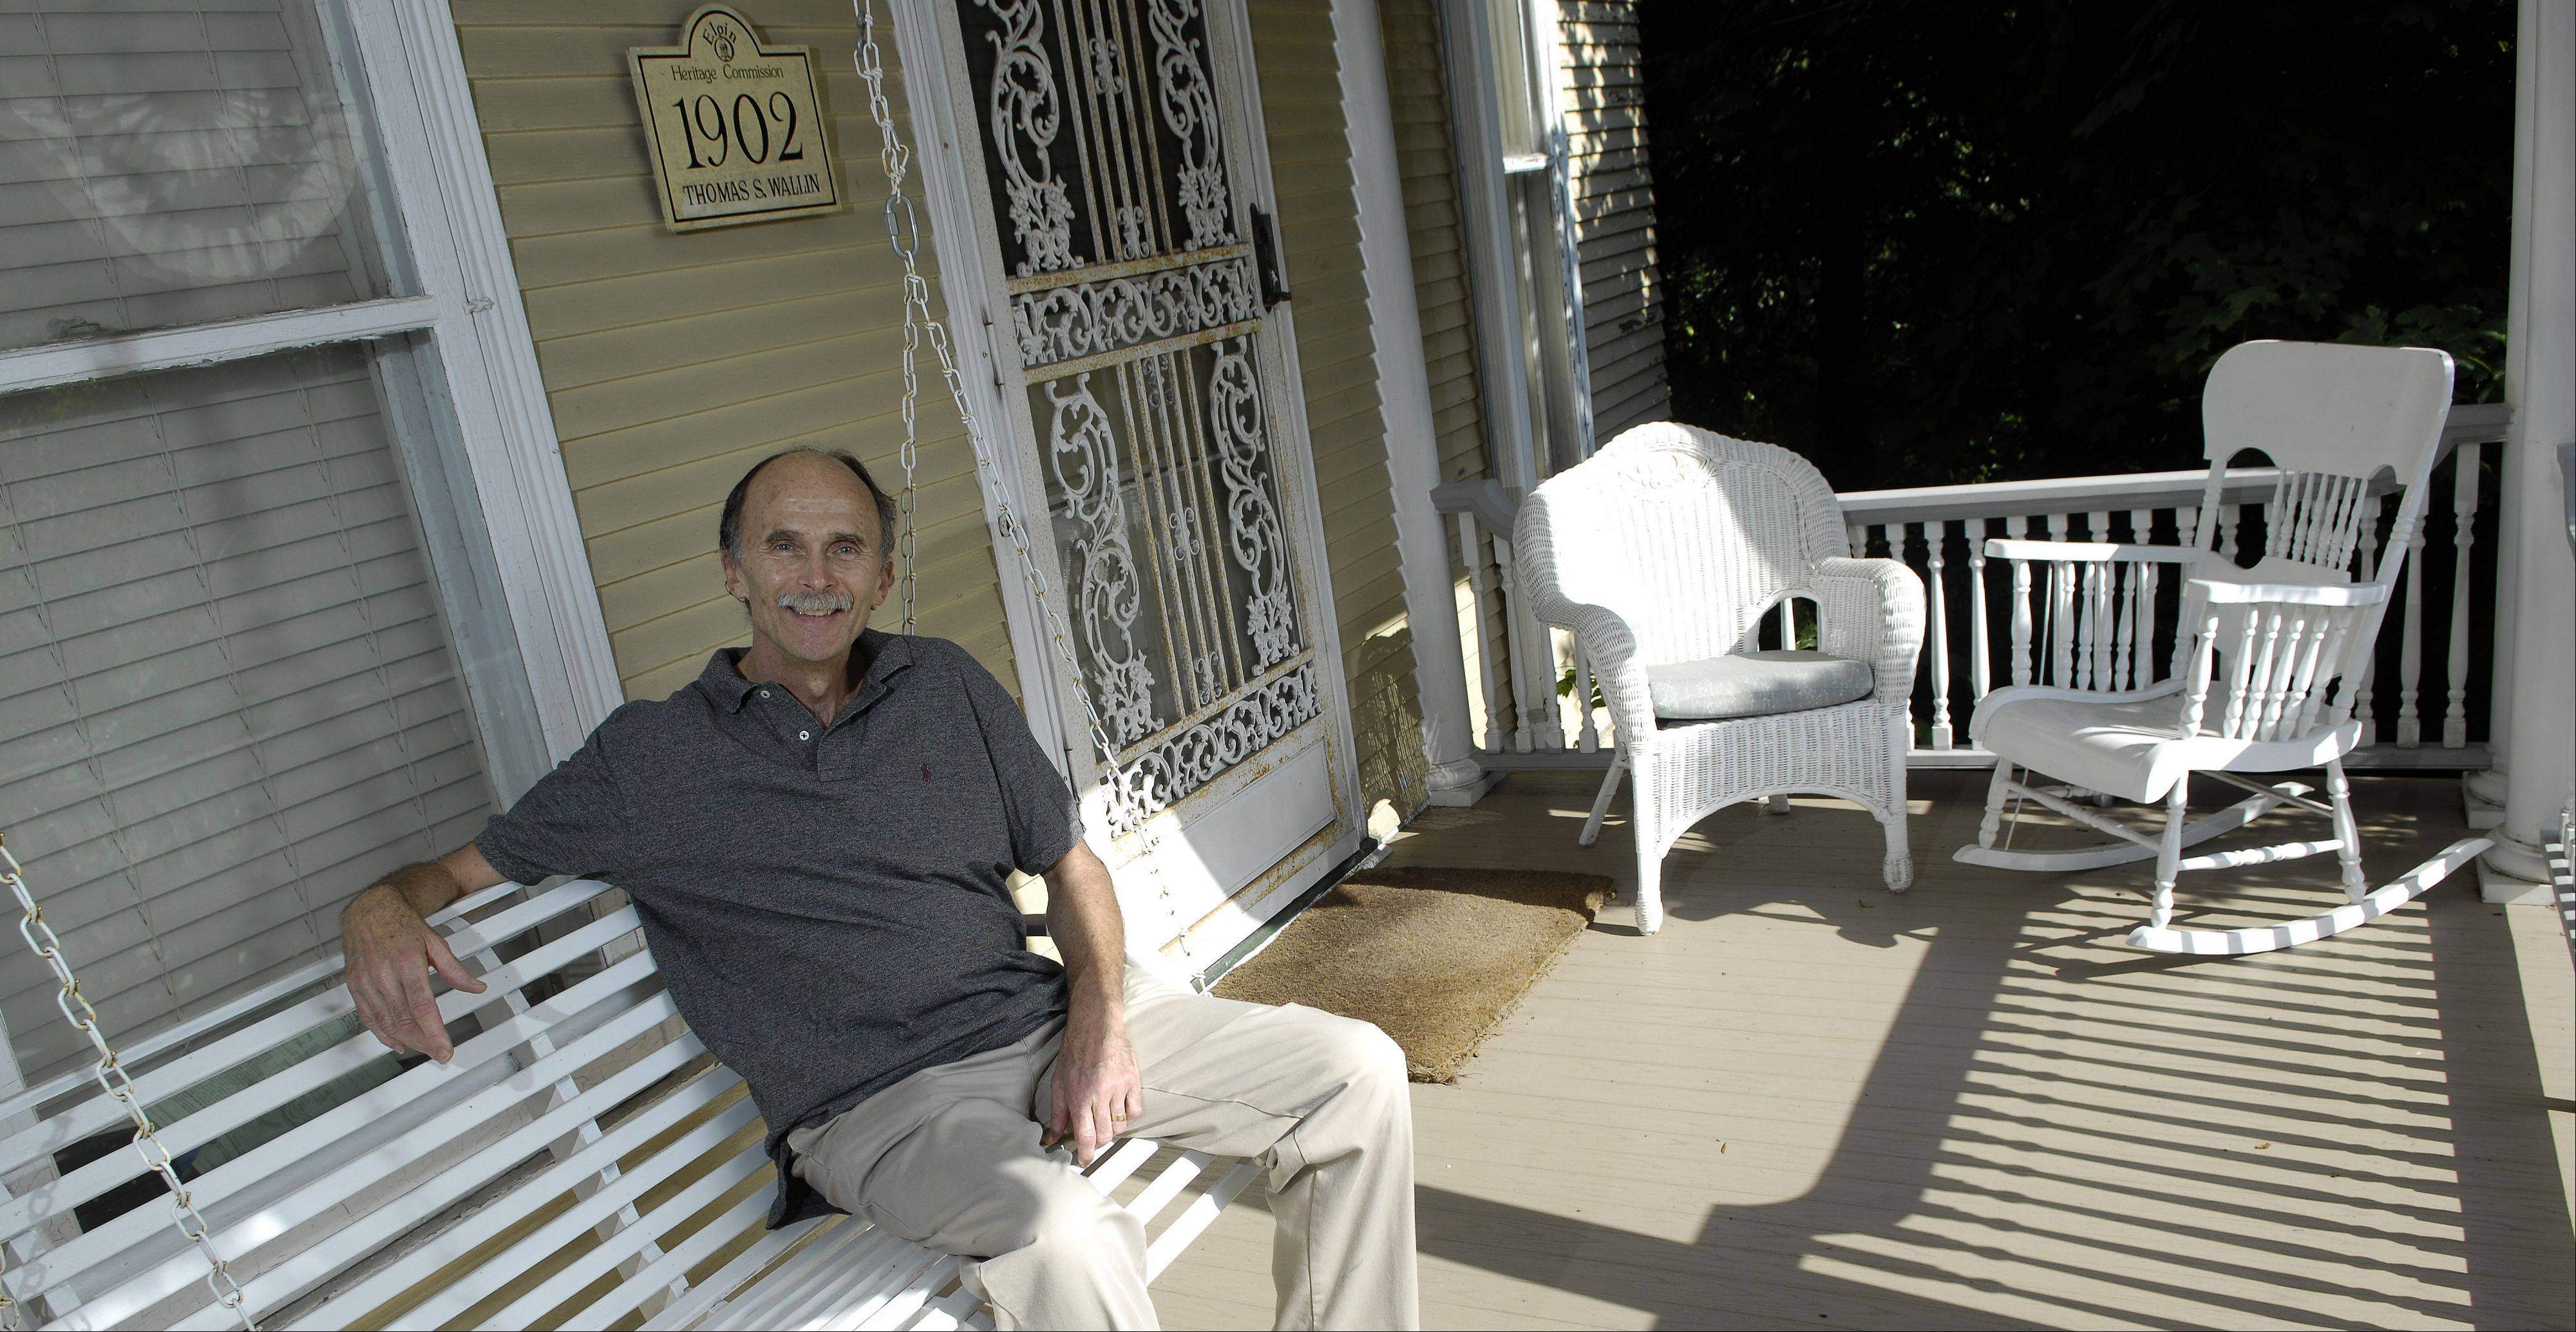 With the help of an Elgin historical grant, Decker will complete the two-phase porch project this fall.